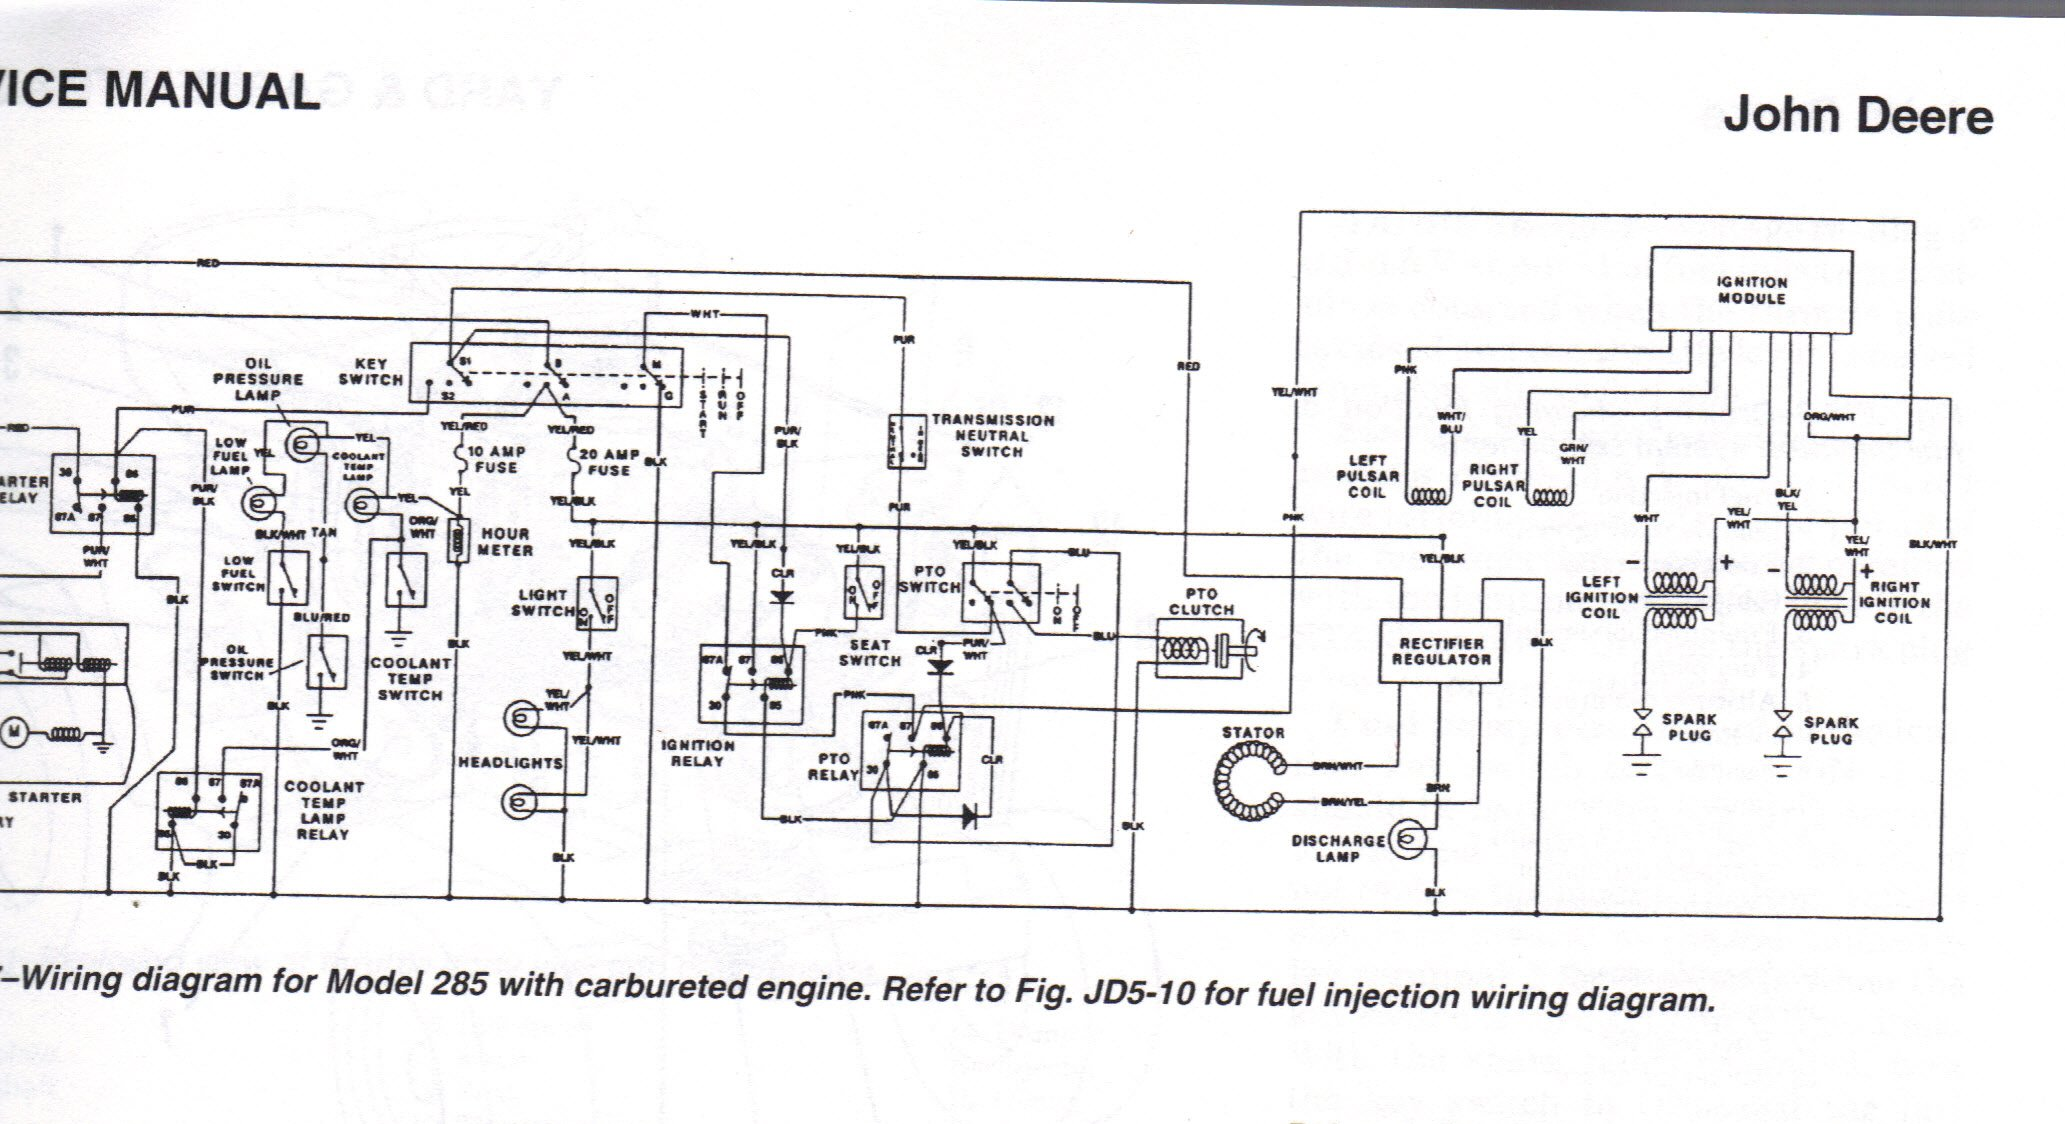 wiring diagram for 4020 john deere tractor the wiring diagram john deere 320 lawn tractor wiring diagram john printable wiring diagram